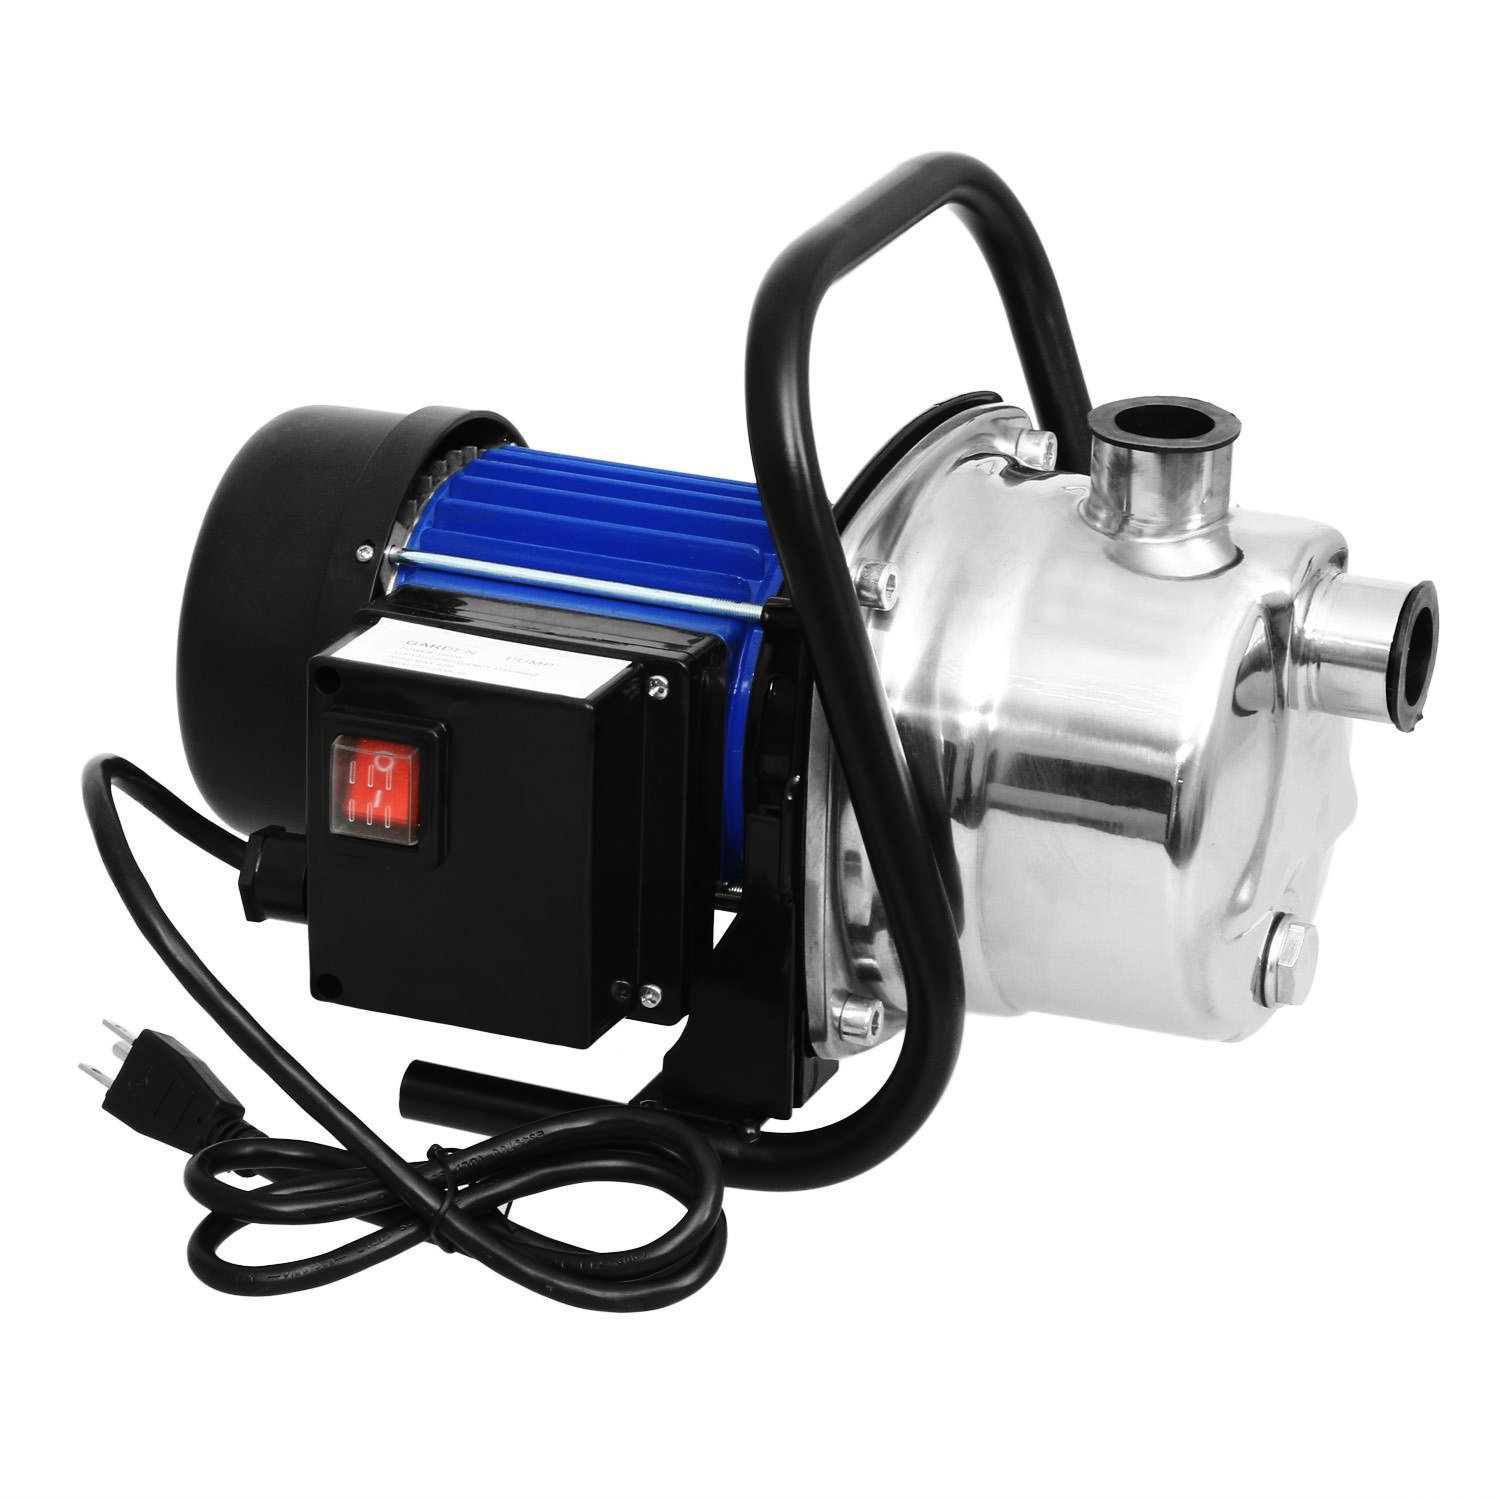 Kaluo 1.6HP Portable Lawn Sprinkling Pump Stainless Steel for Home Garden Irrigation Well Water Supply